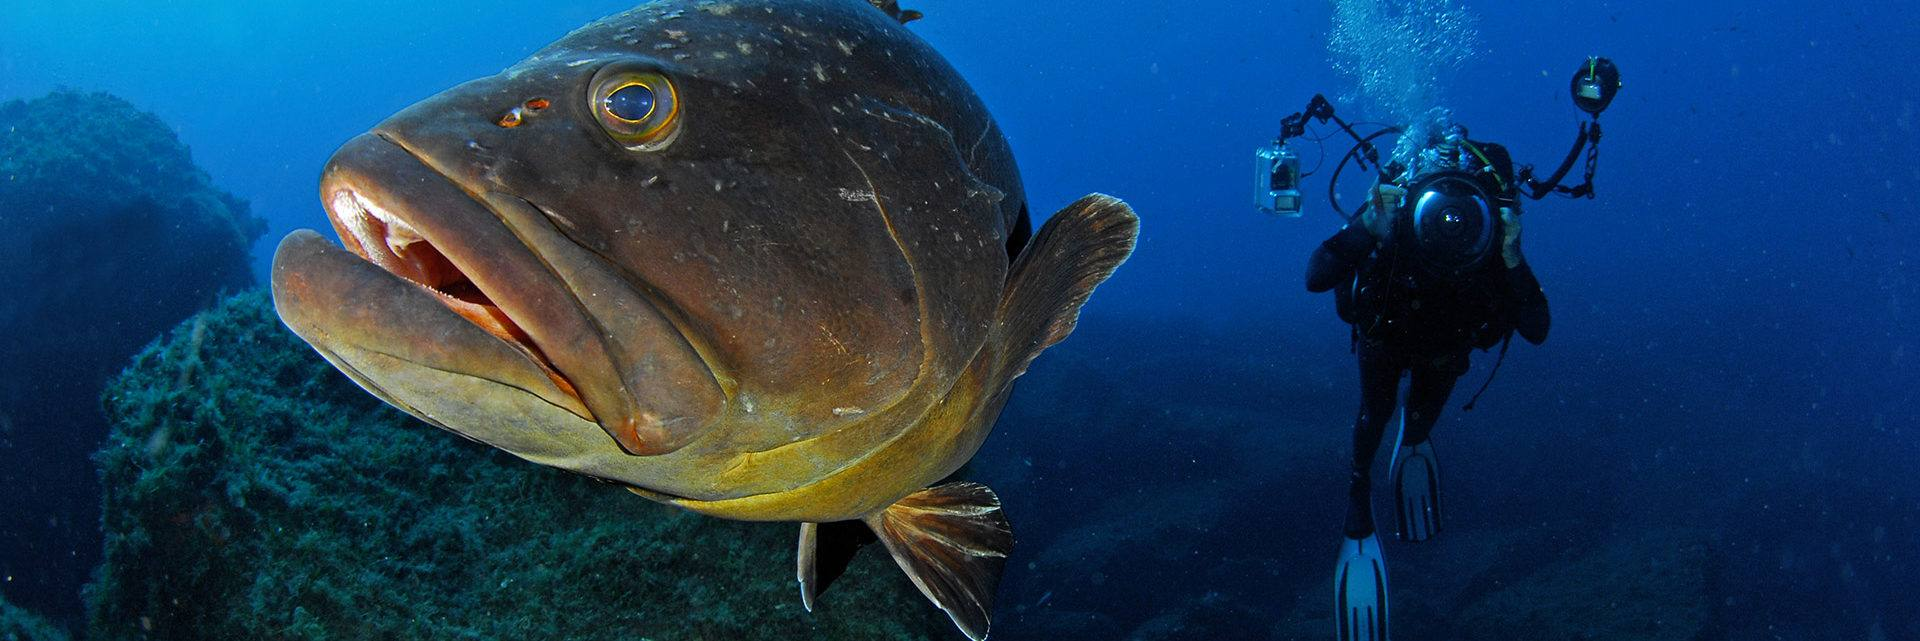 Brown grouper fish and diver